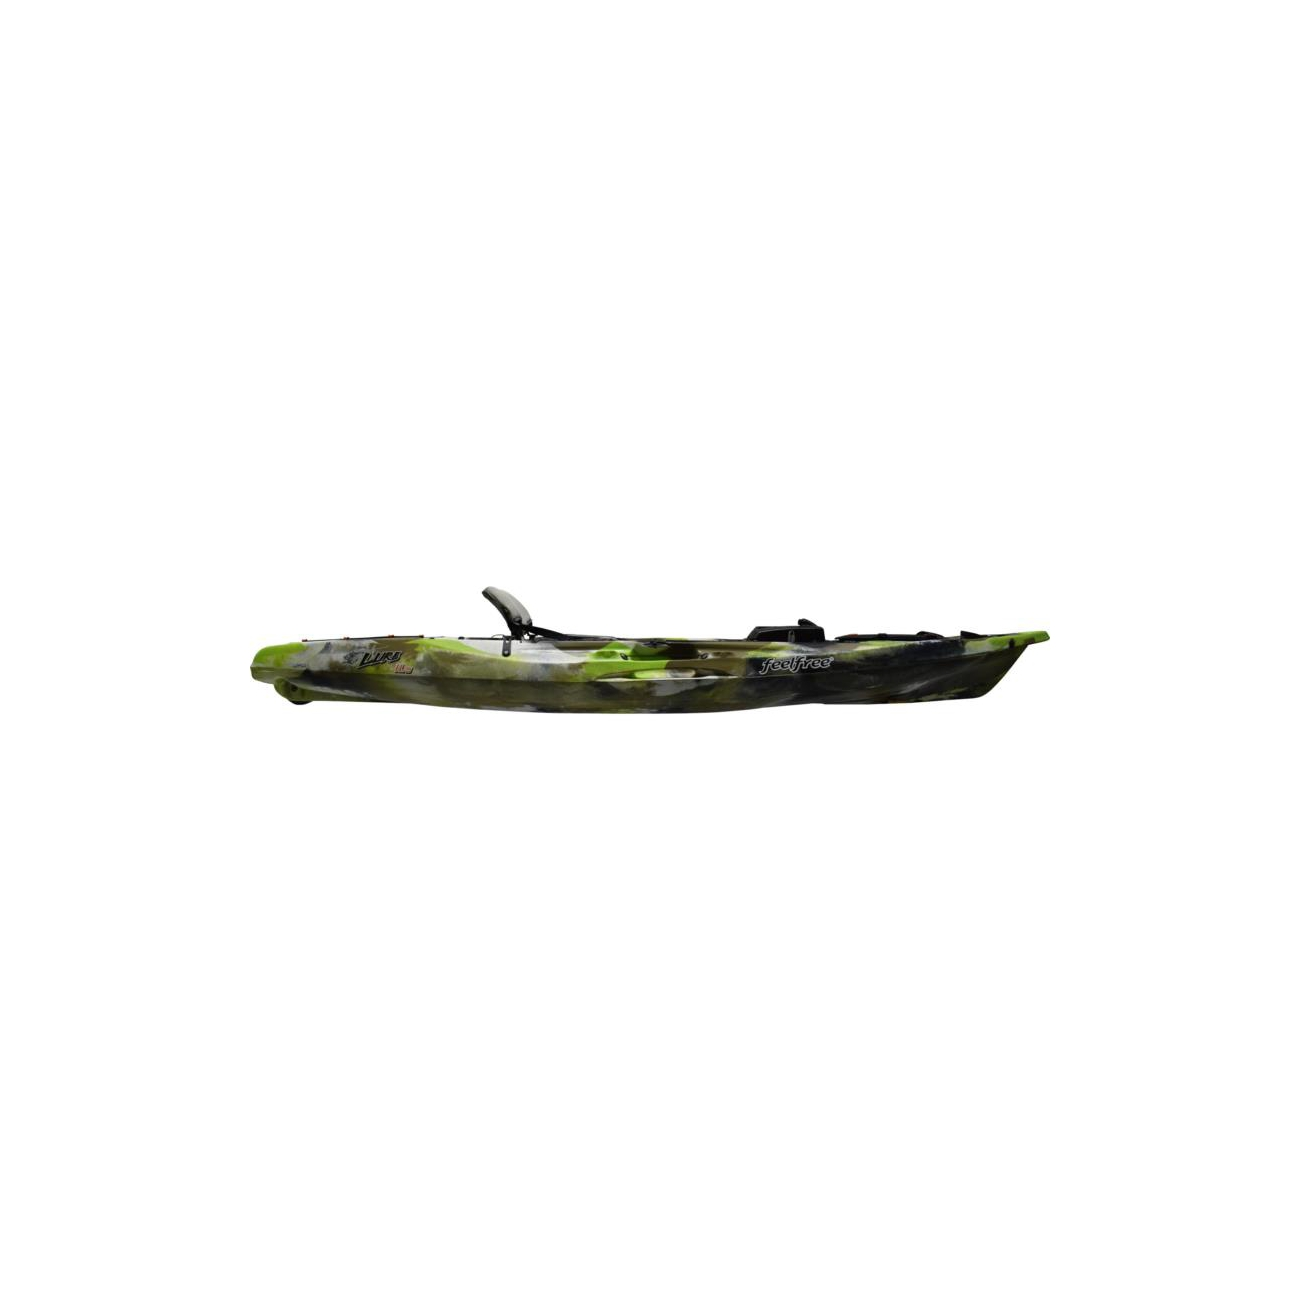 https://feelfreekayak.eu/659-small_default/lure-115-v2-winter-camo.jpg